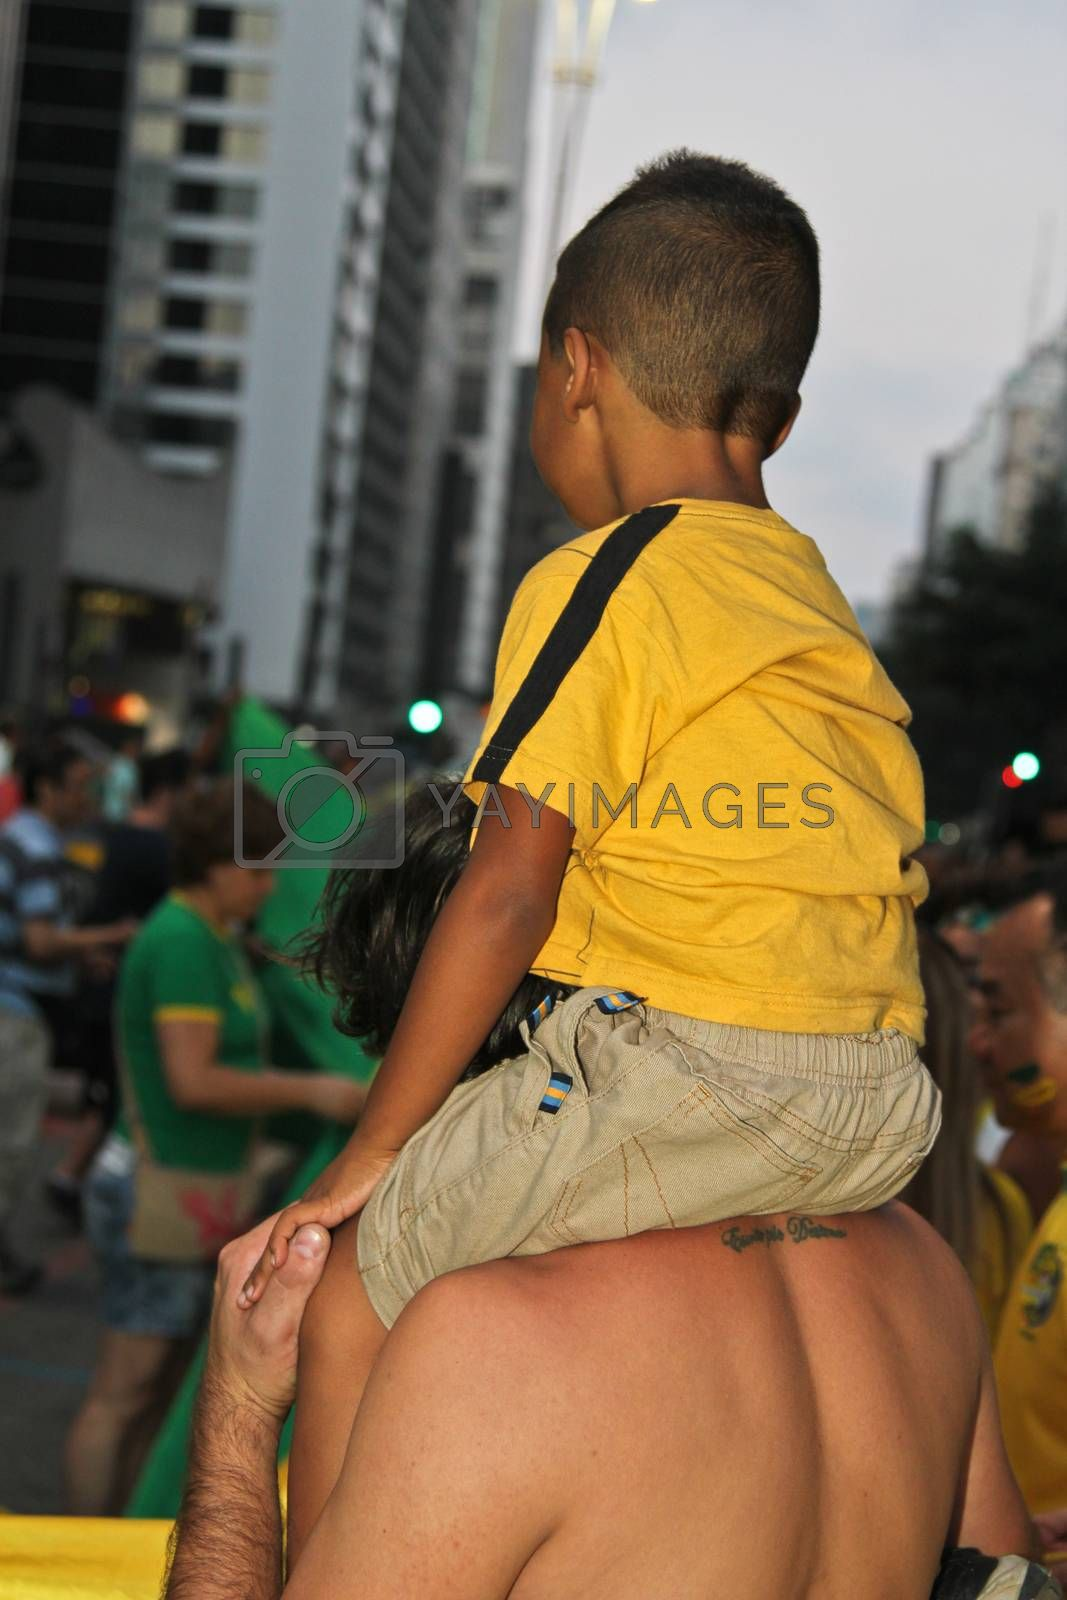 SAO PAULO, BRAZIL - APRIL 12, 2015: One unidentified boy and a man in the middle of crowd at protest against federal government corruption on Sao Paulo Brazil. Protesters call for the impeachment of President Dilma Rousseff.